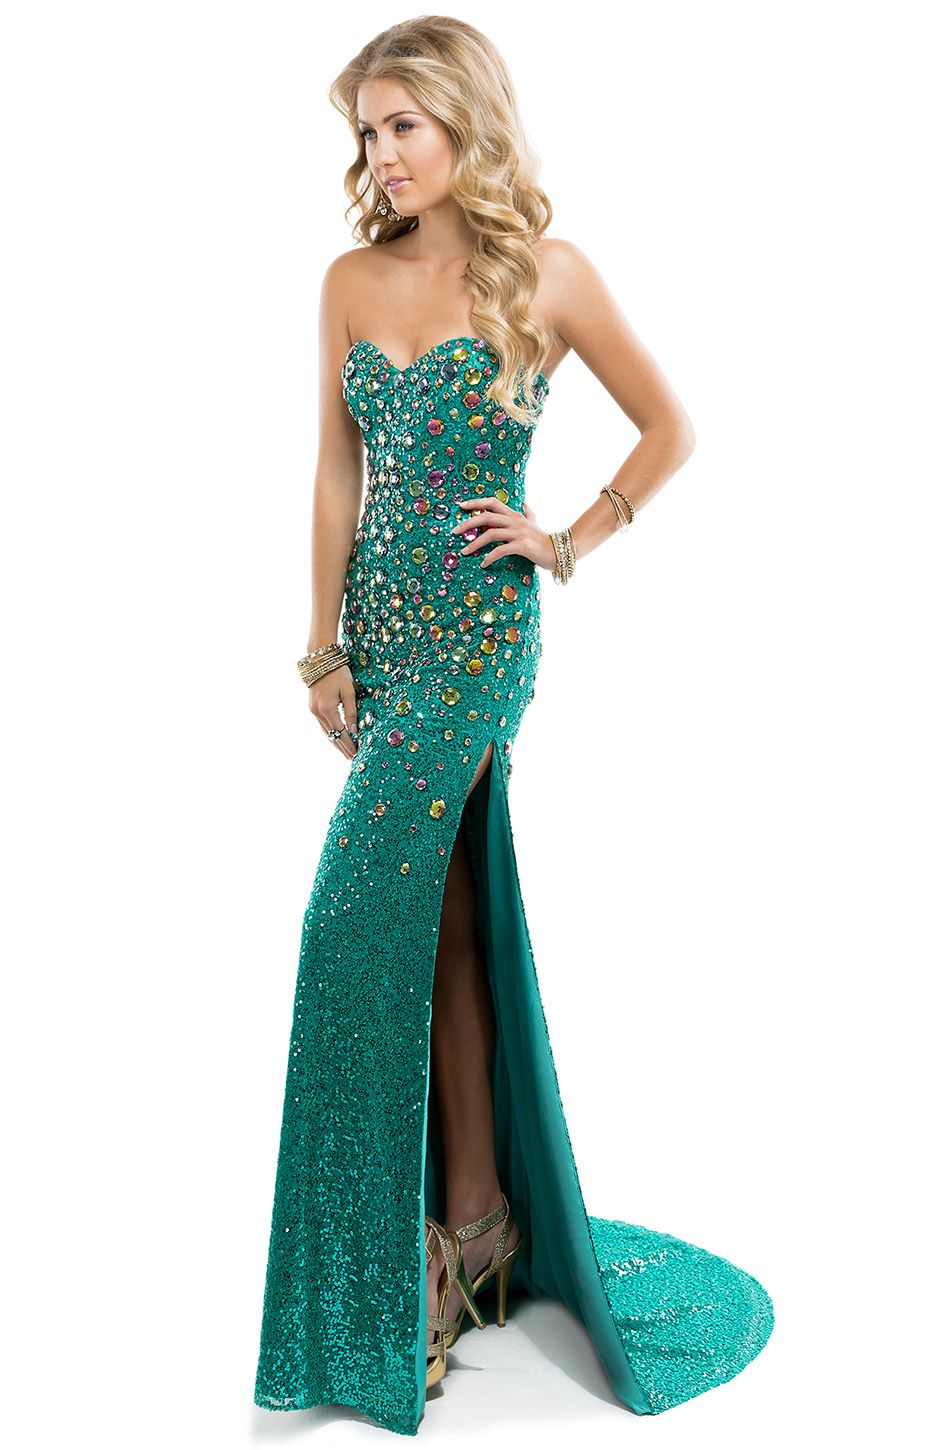 Sparkling Sequin Sheath Dress with Chunky Jeweled Neckline   by ...